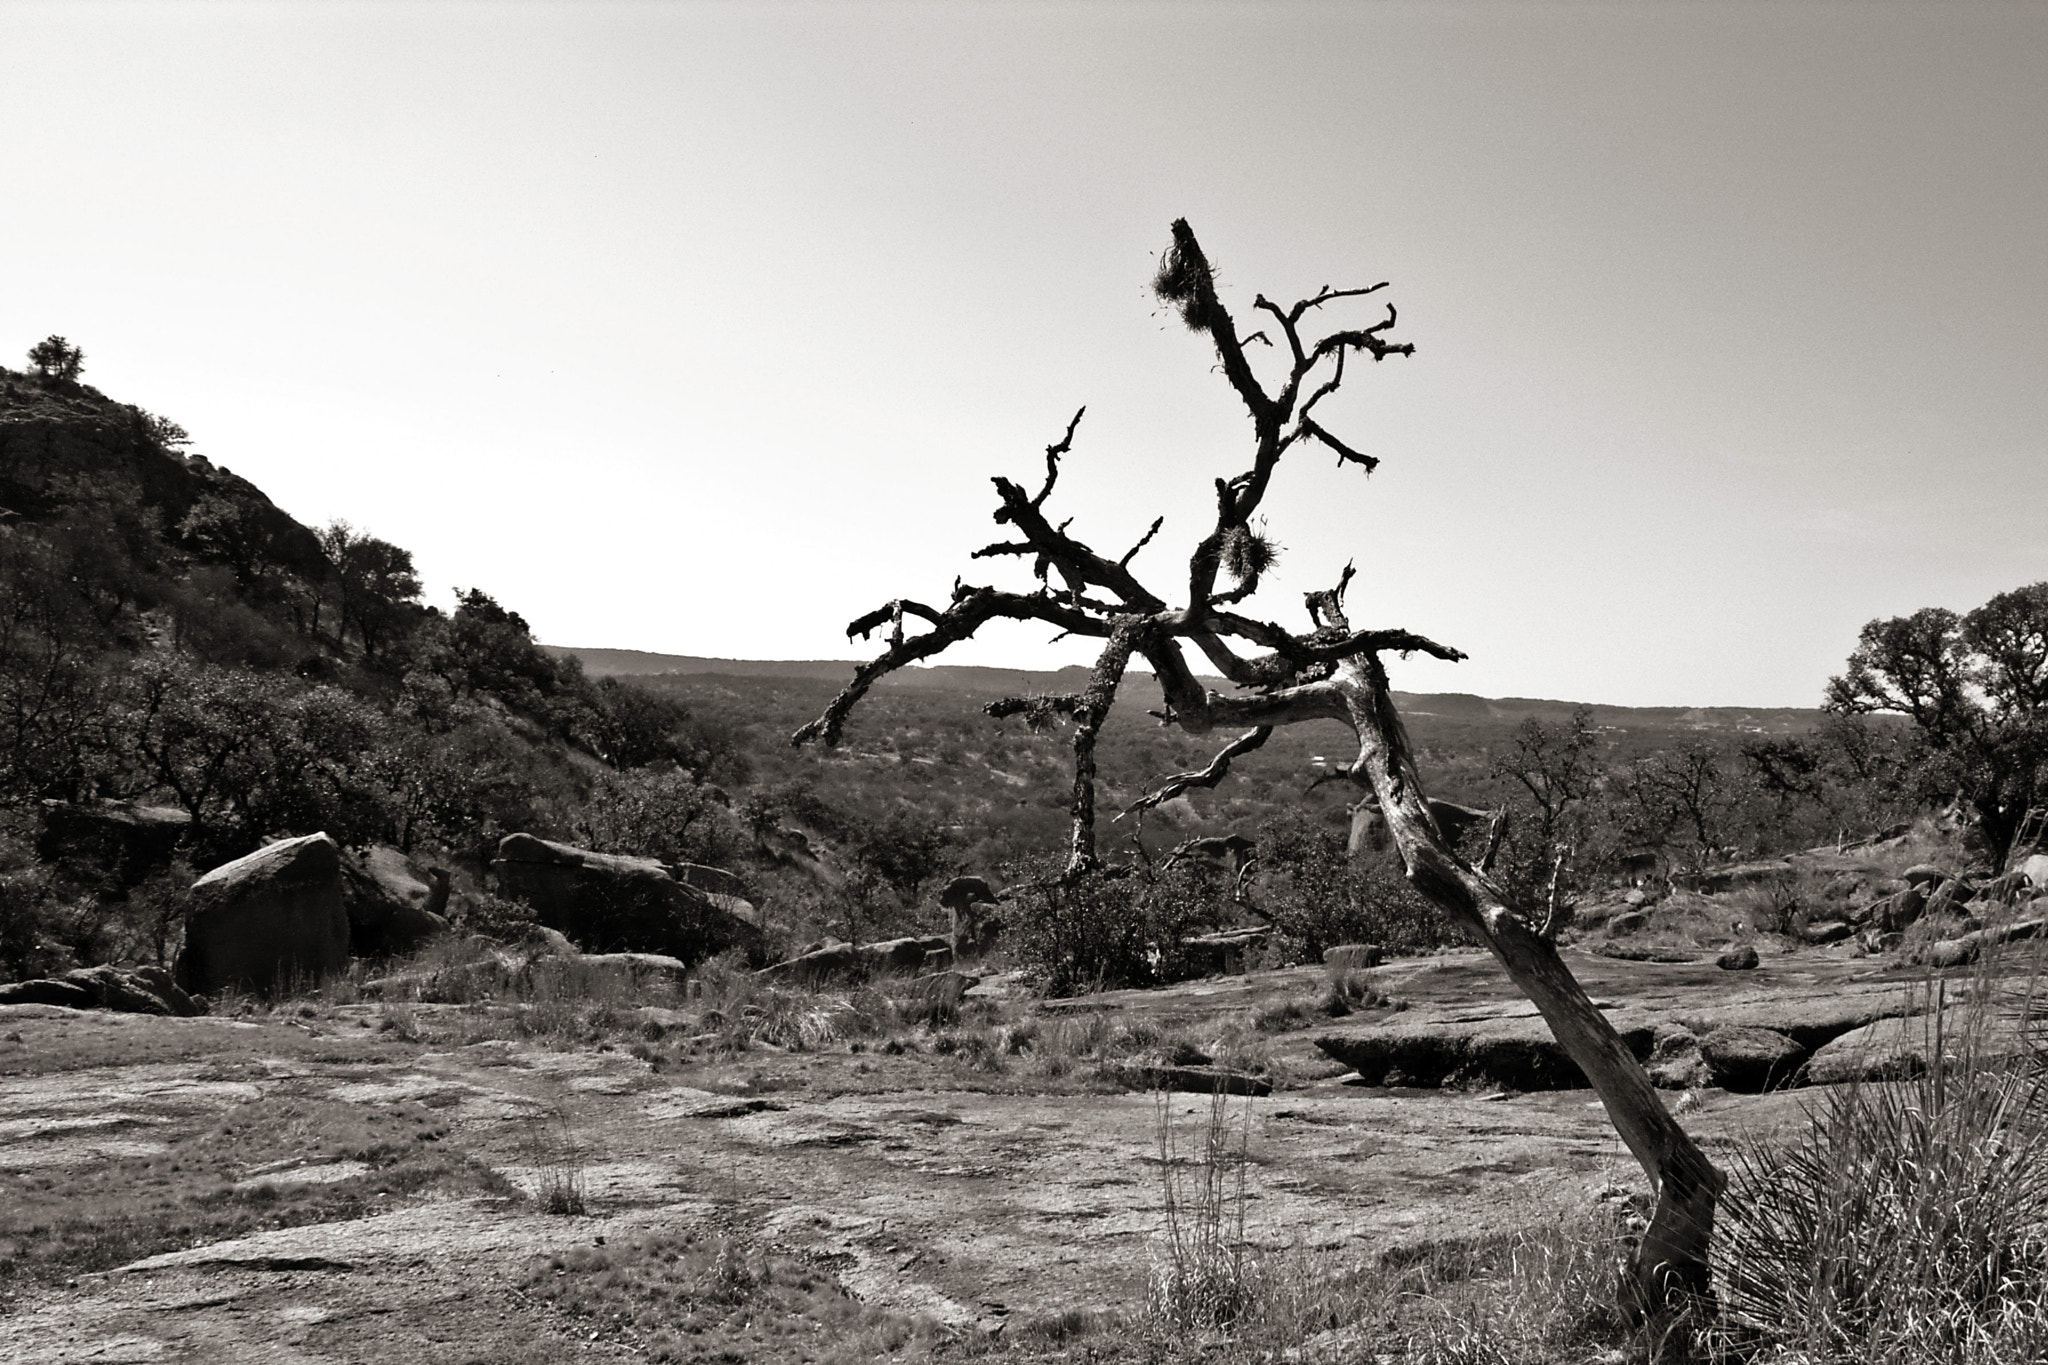 Photograph Death at Enchanted Rock by Just in Musing on 500px